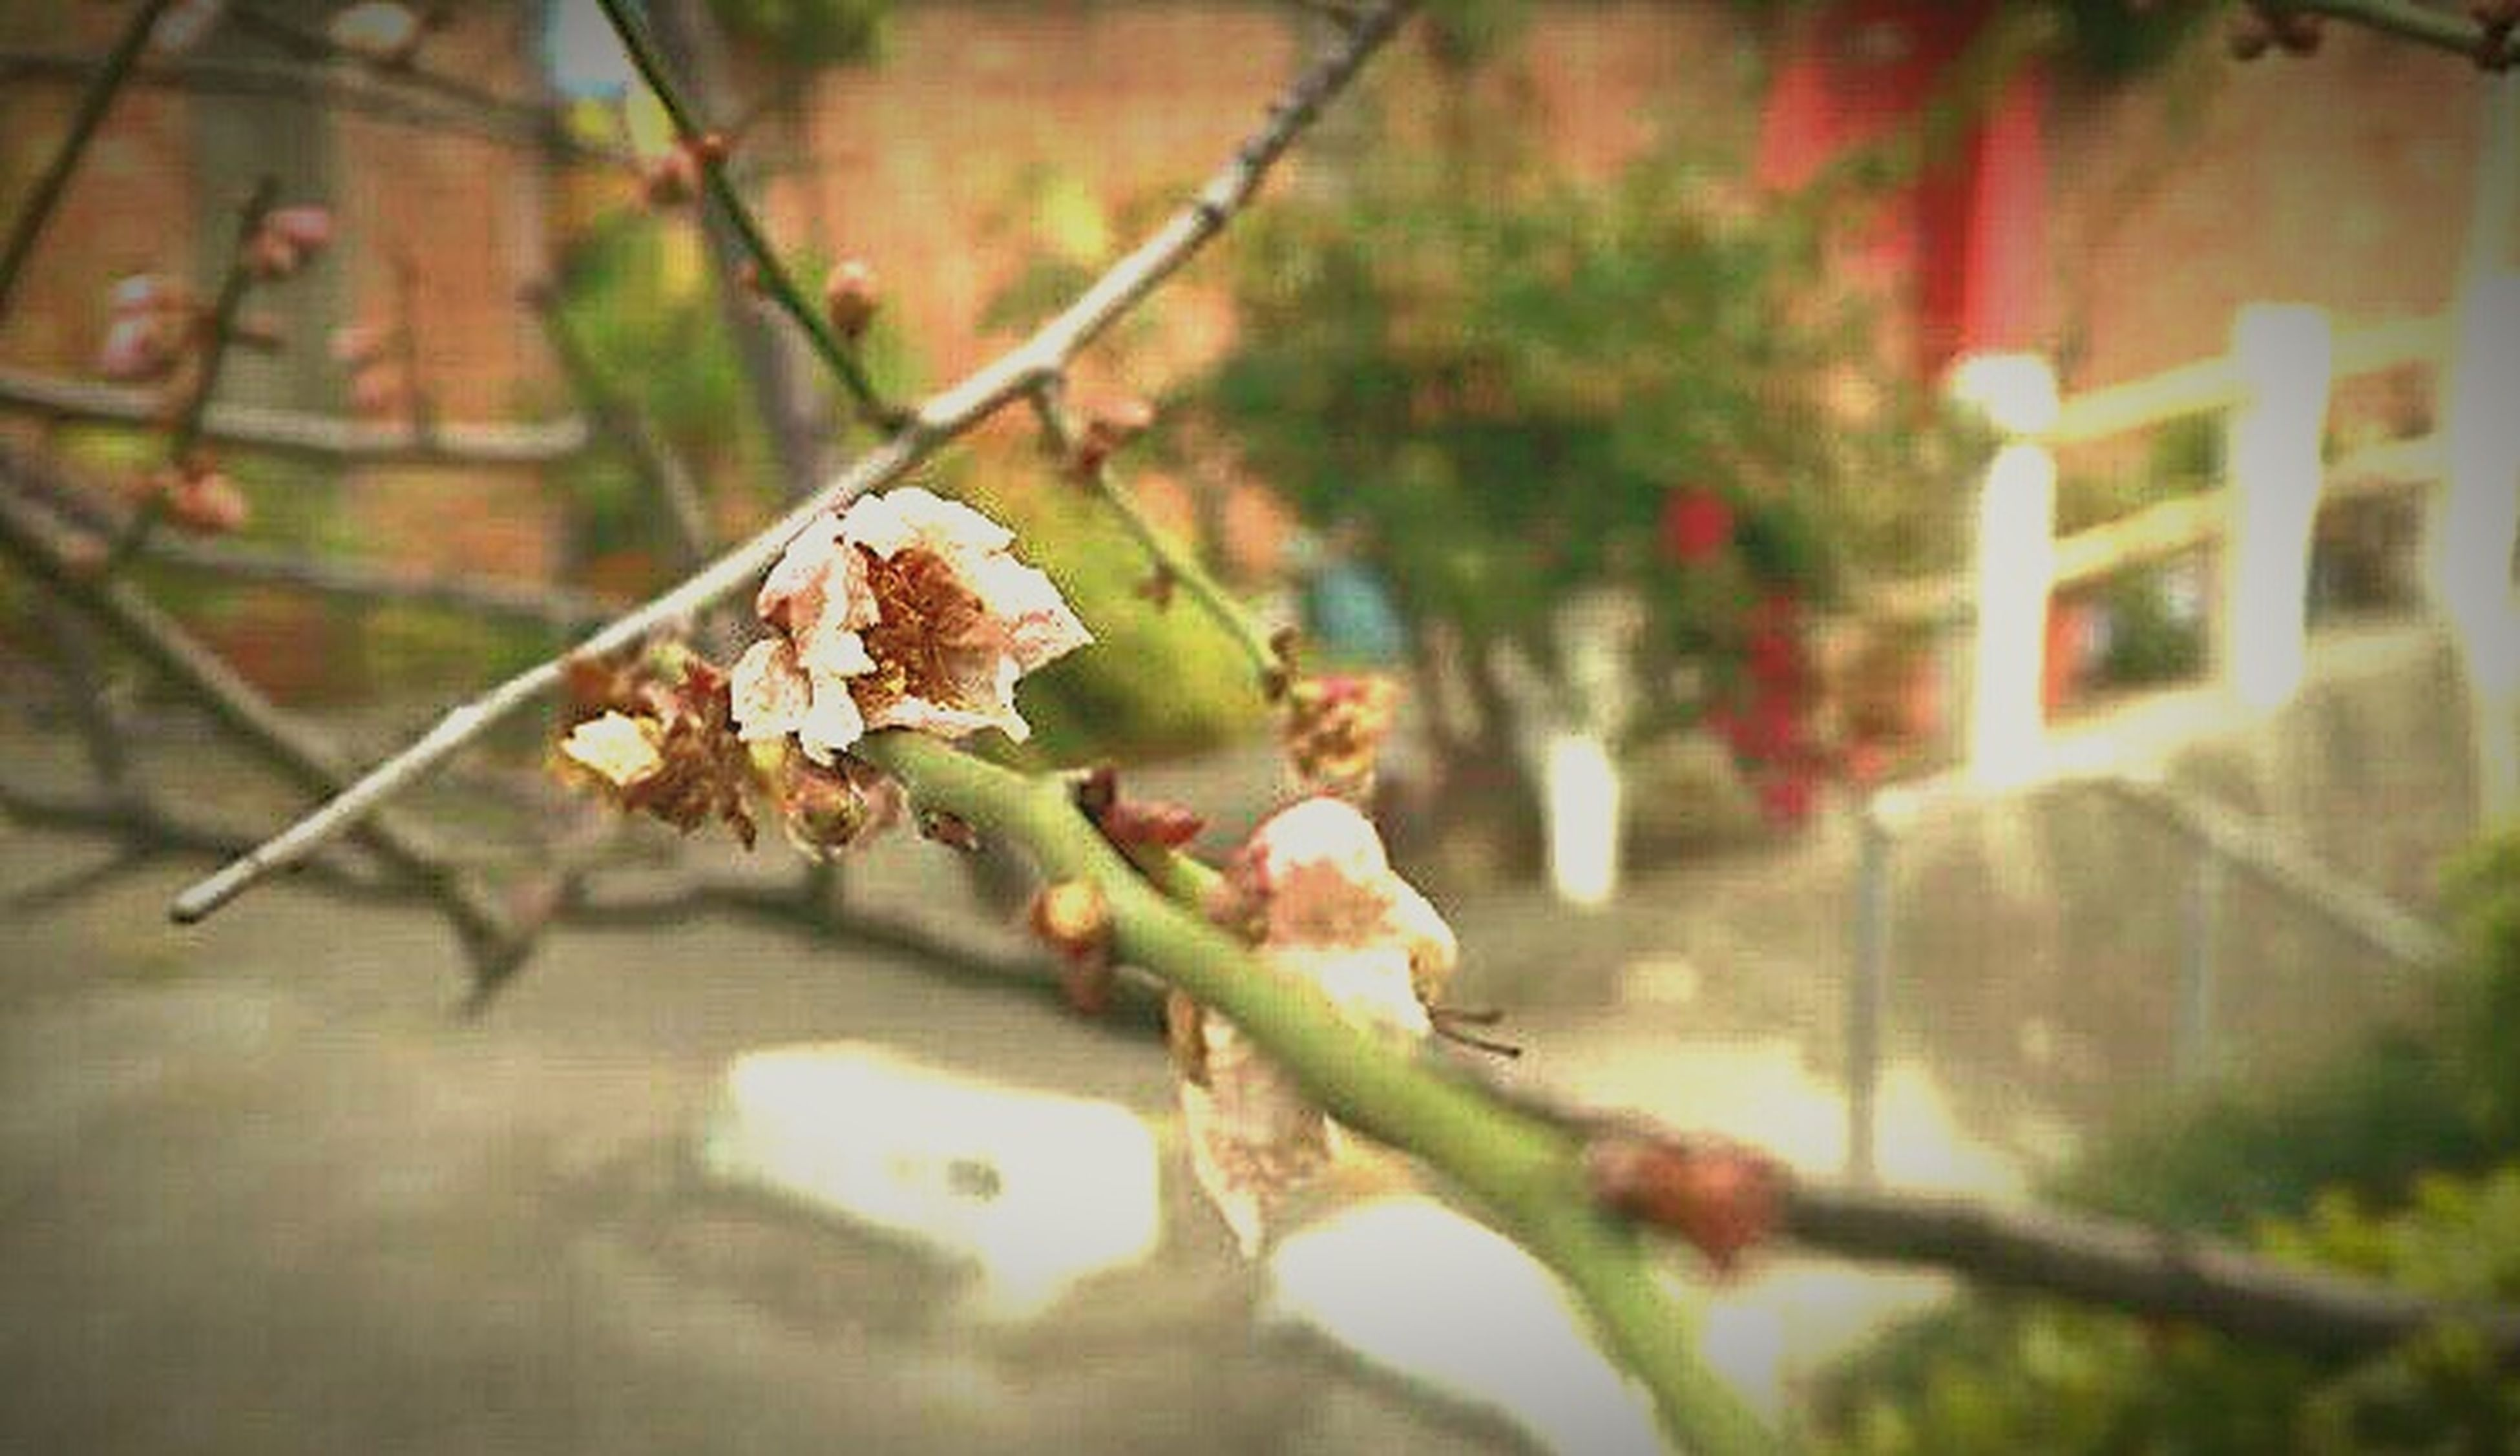 focus on foreground, leaf, close-up, selective focus, autumn, dry, plant, nature, outdoors, branch, day, no people, built structure, twig, growth, change, season, wall - building feature, architecture, leaves